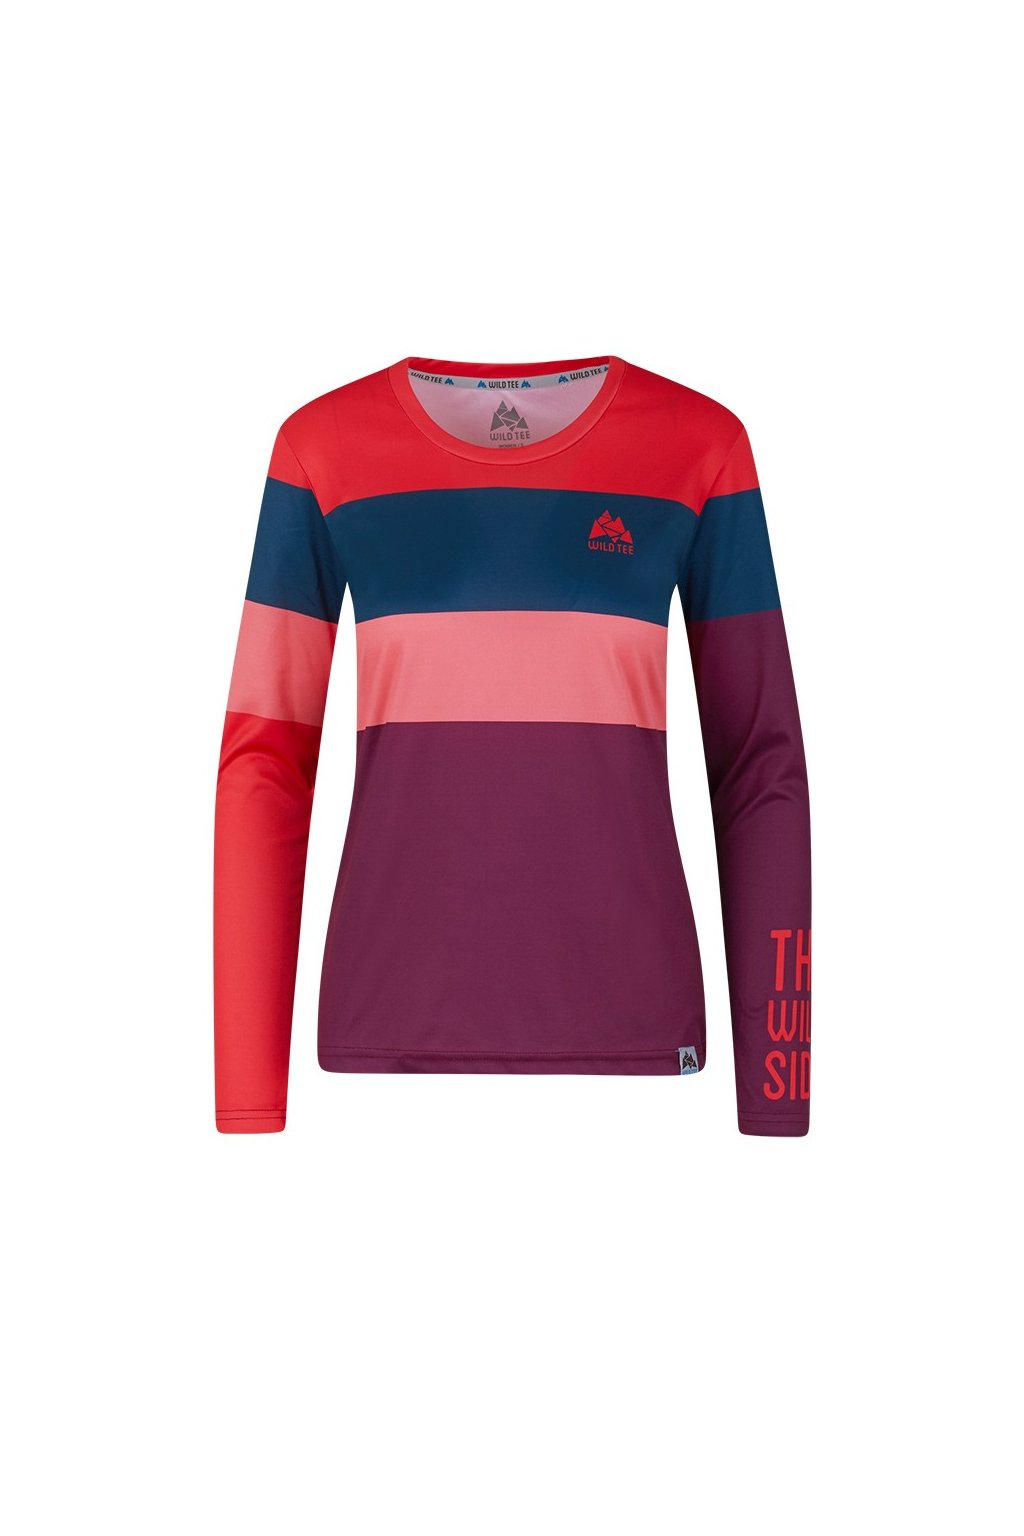 colorblock cherry women longsleeve